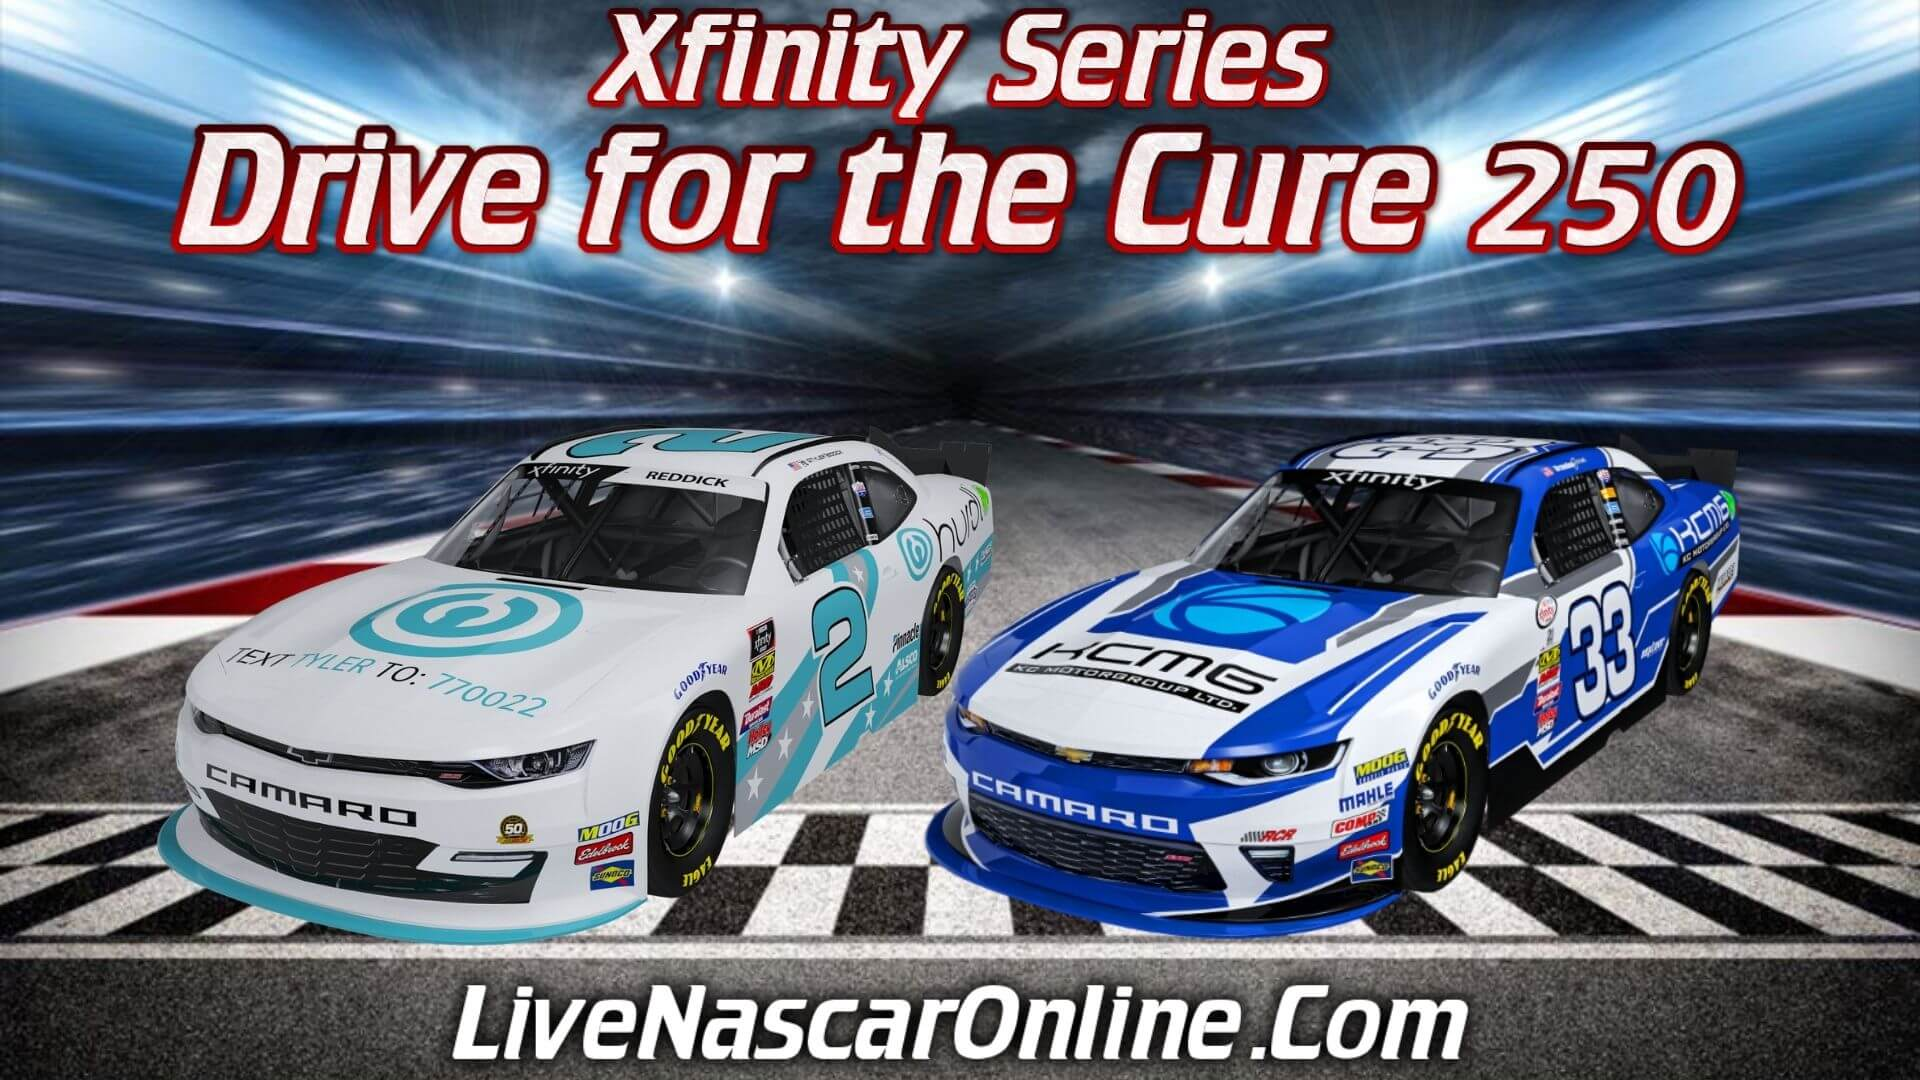 drive-for-the-cure-300-xfinity-series-live-online